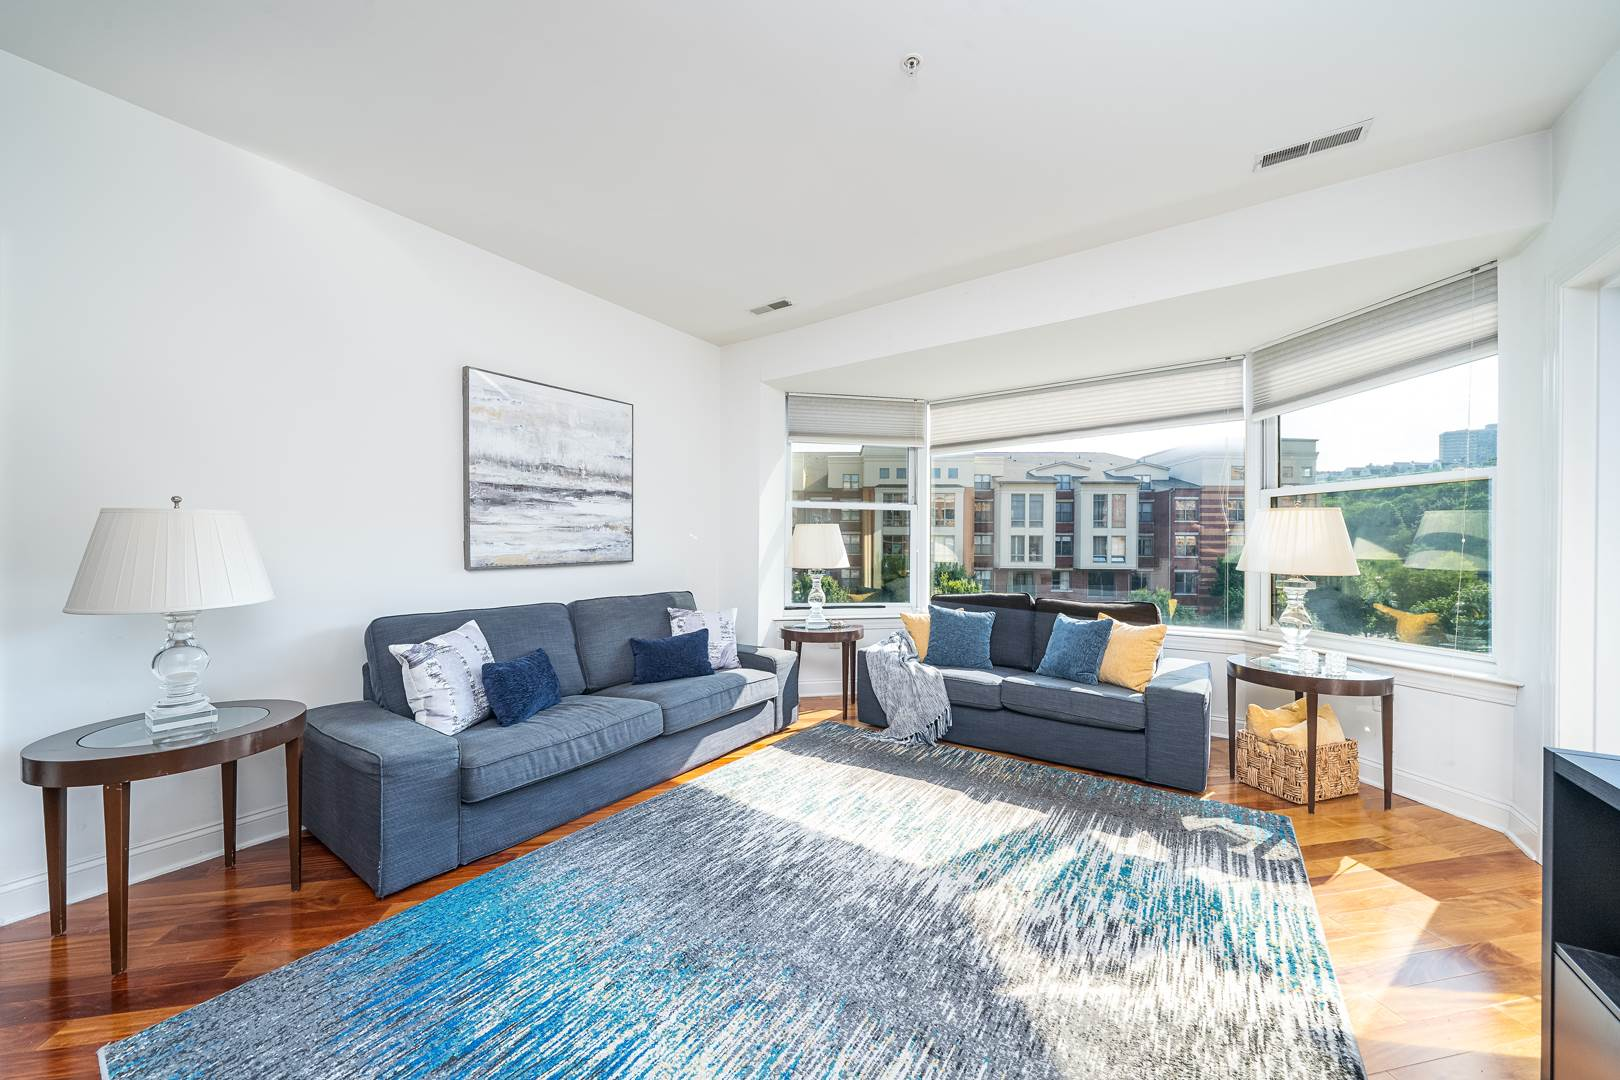 22 Avenue At Port Imperial #320, West New York, NJ 07093